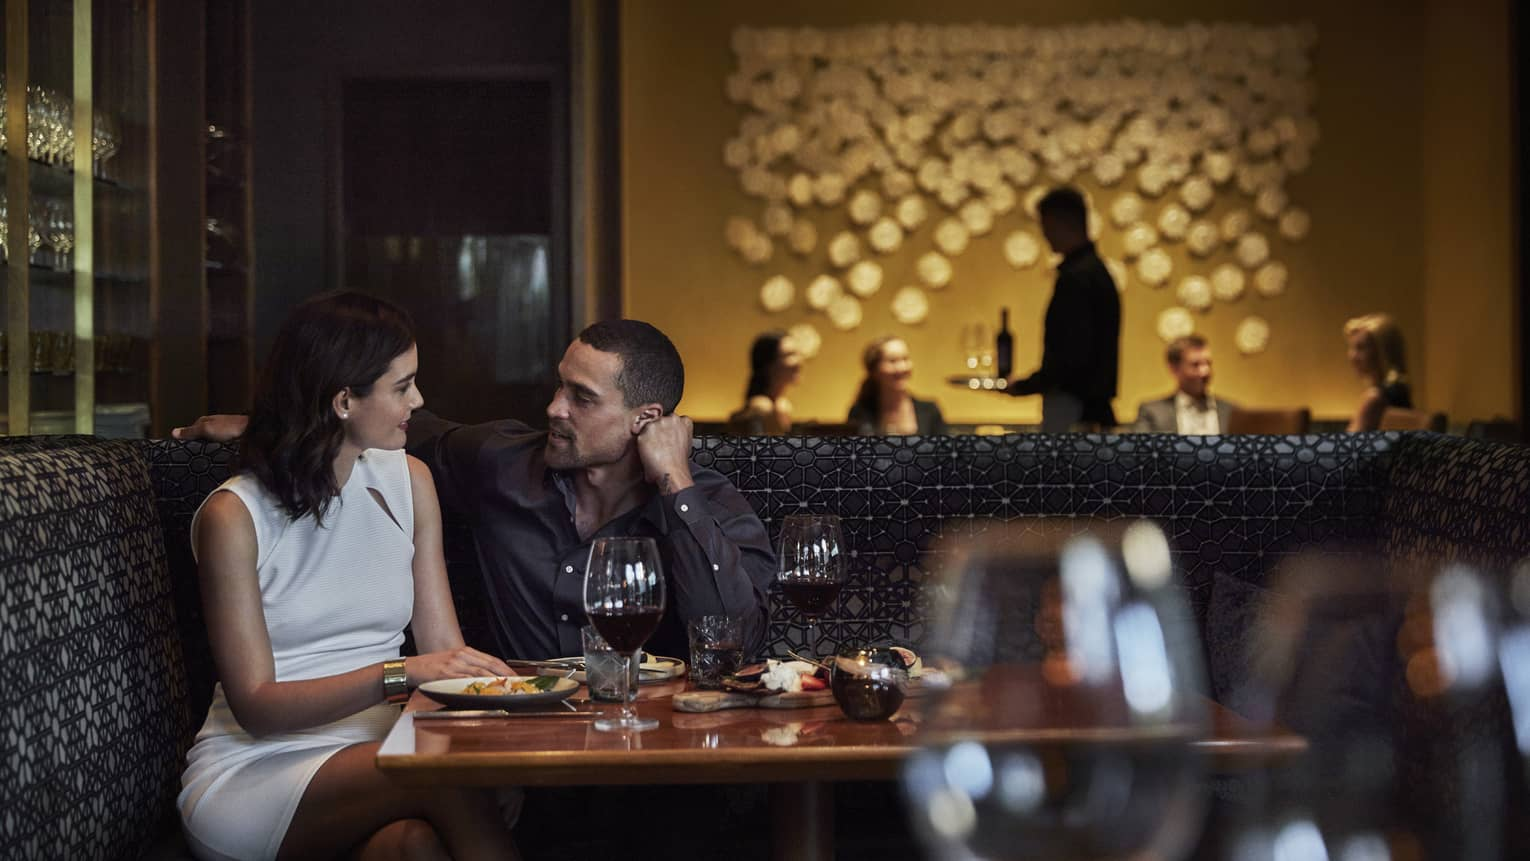 A couple share and dinner and wine in a dimly-lit restaurant, a layered art piece decorates the back wall and empty wine glasses fill the foreground